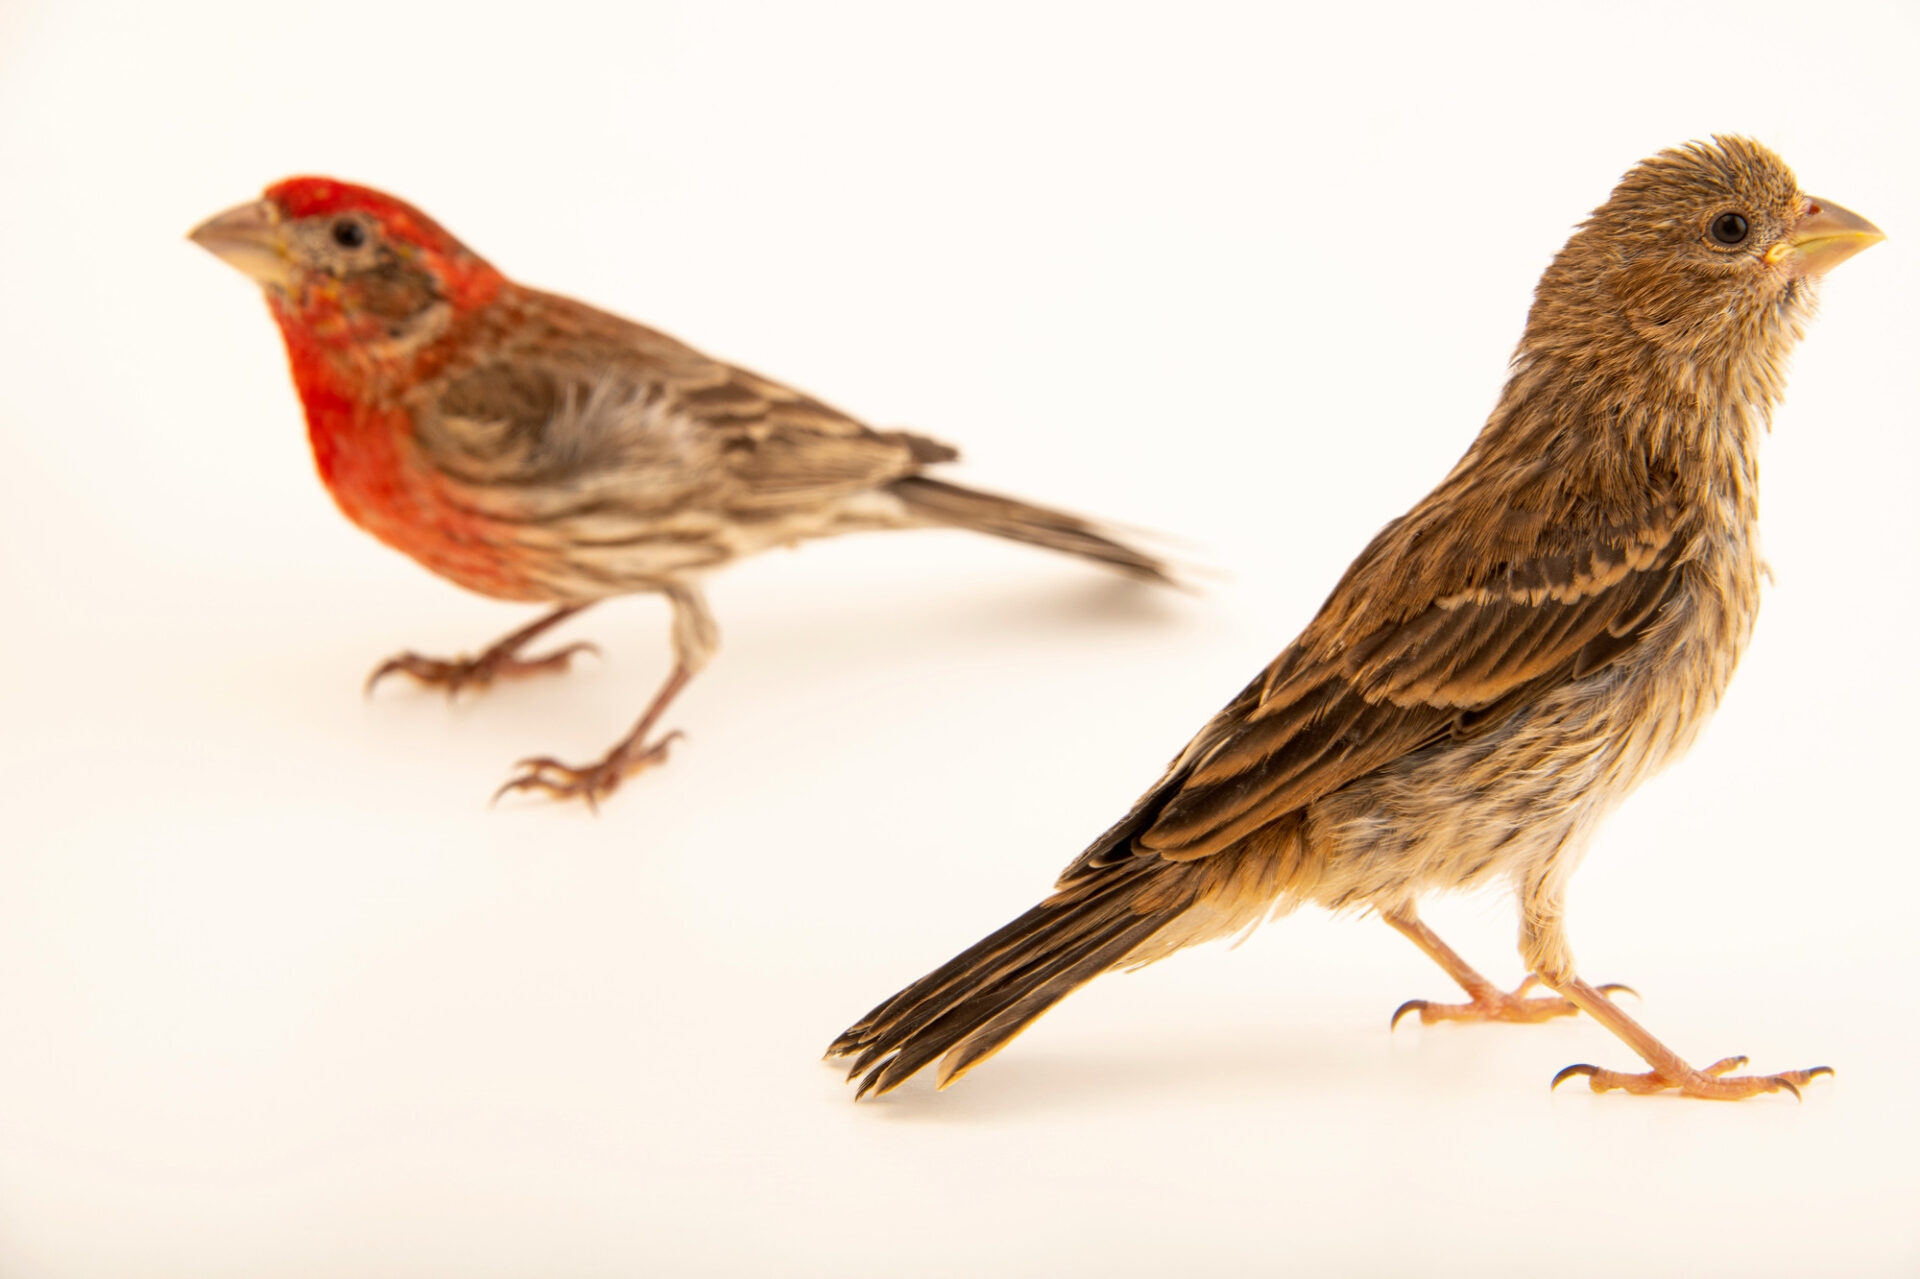 Photo: A pair of house finch (Haemorhous mexicanus frontalis) at Rogers Wildlife Rehabilitation in Hutchins, TX. The male has a red breast.